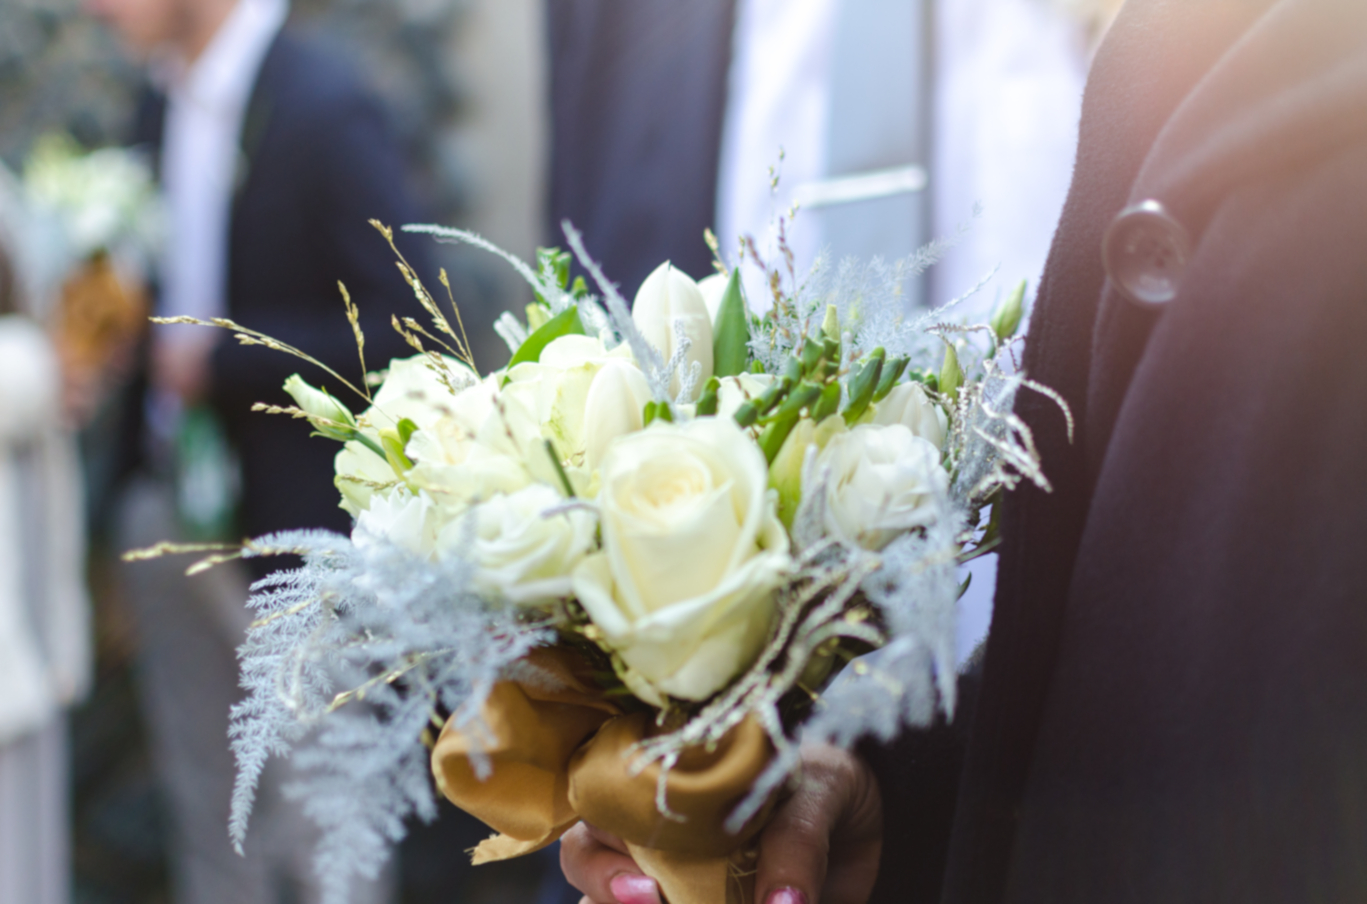 bouquet of flowers, held by hand in formal wear